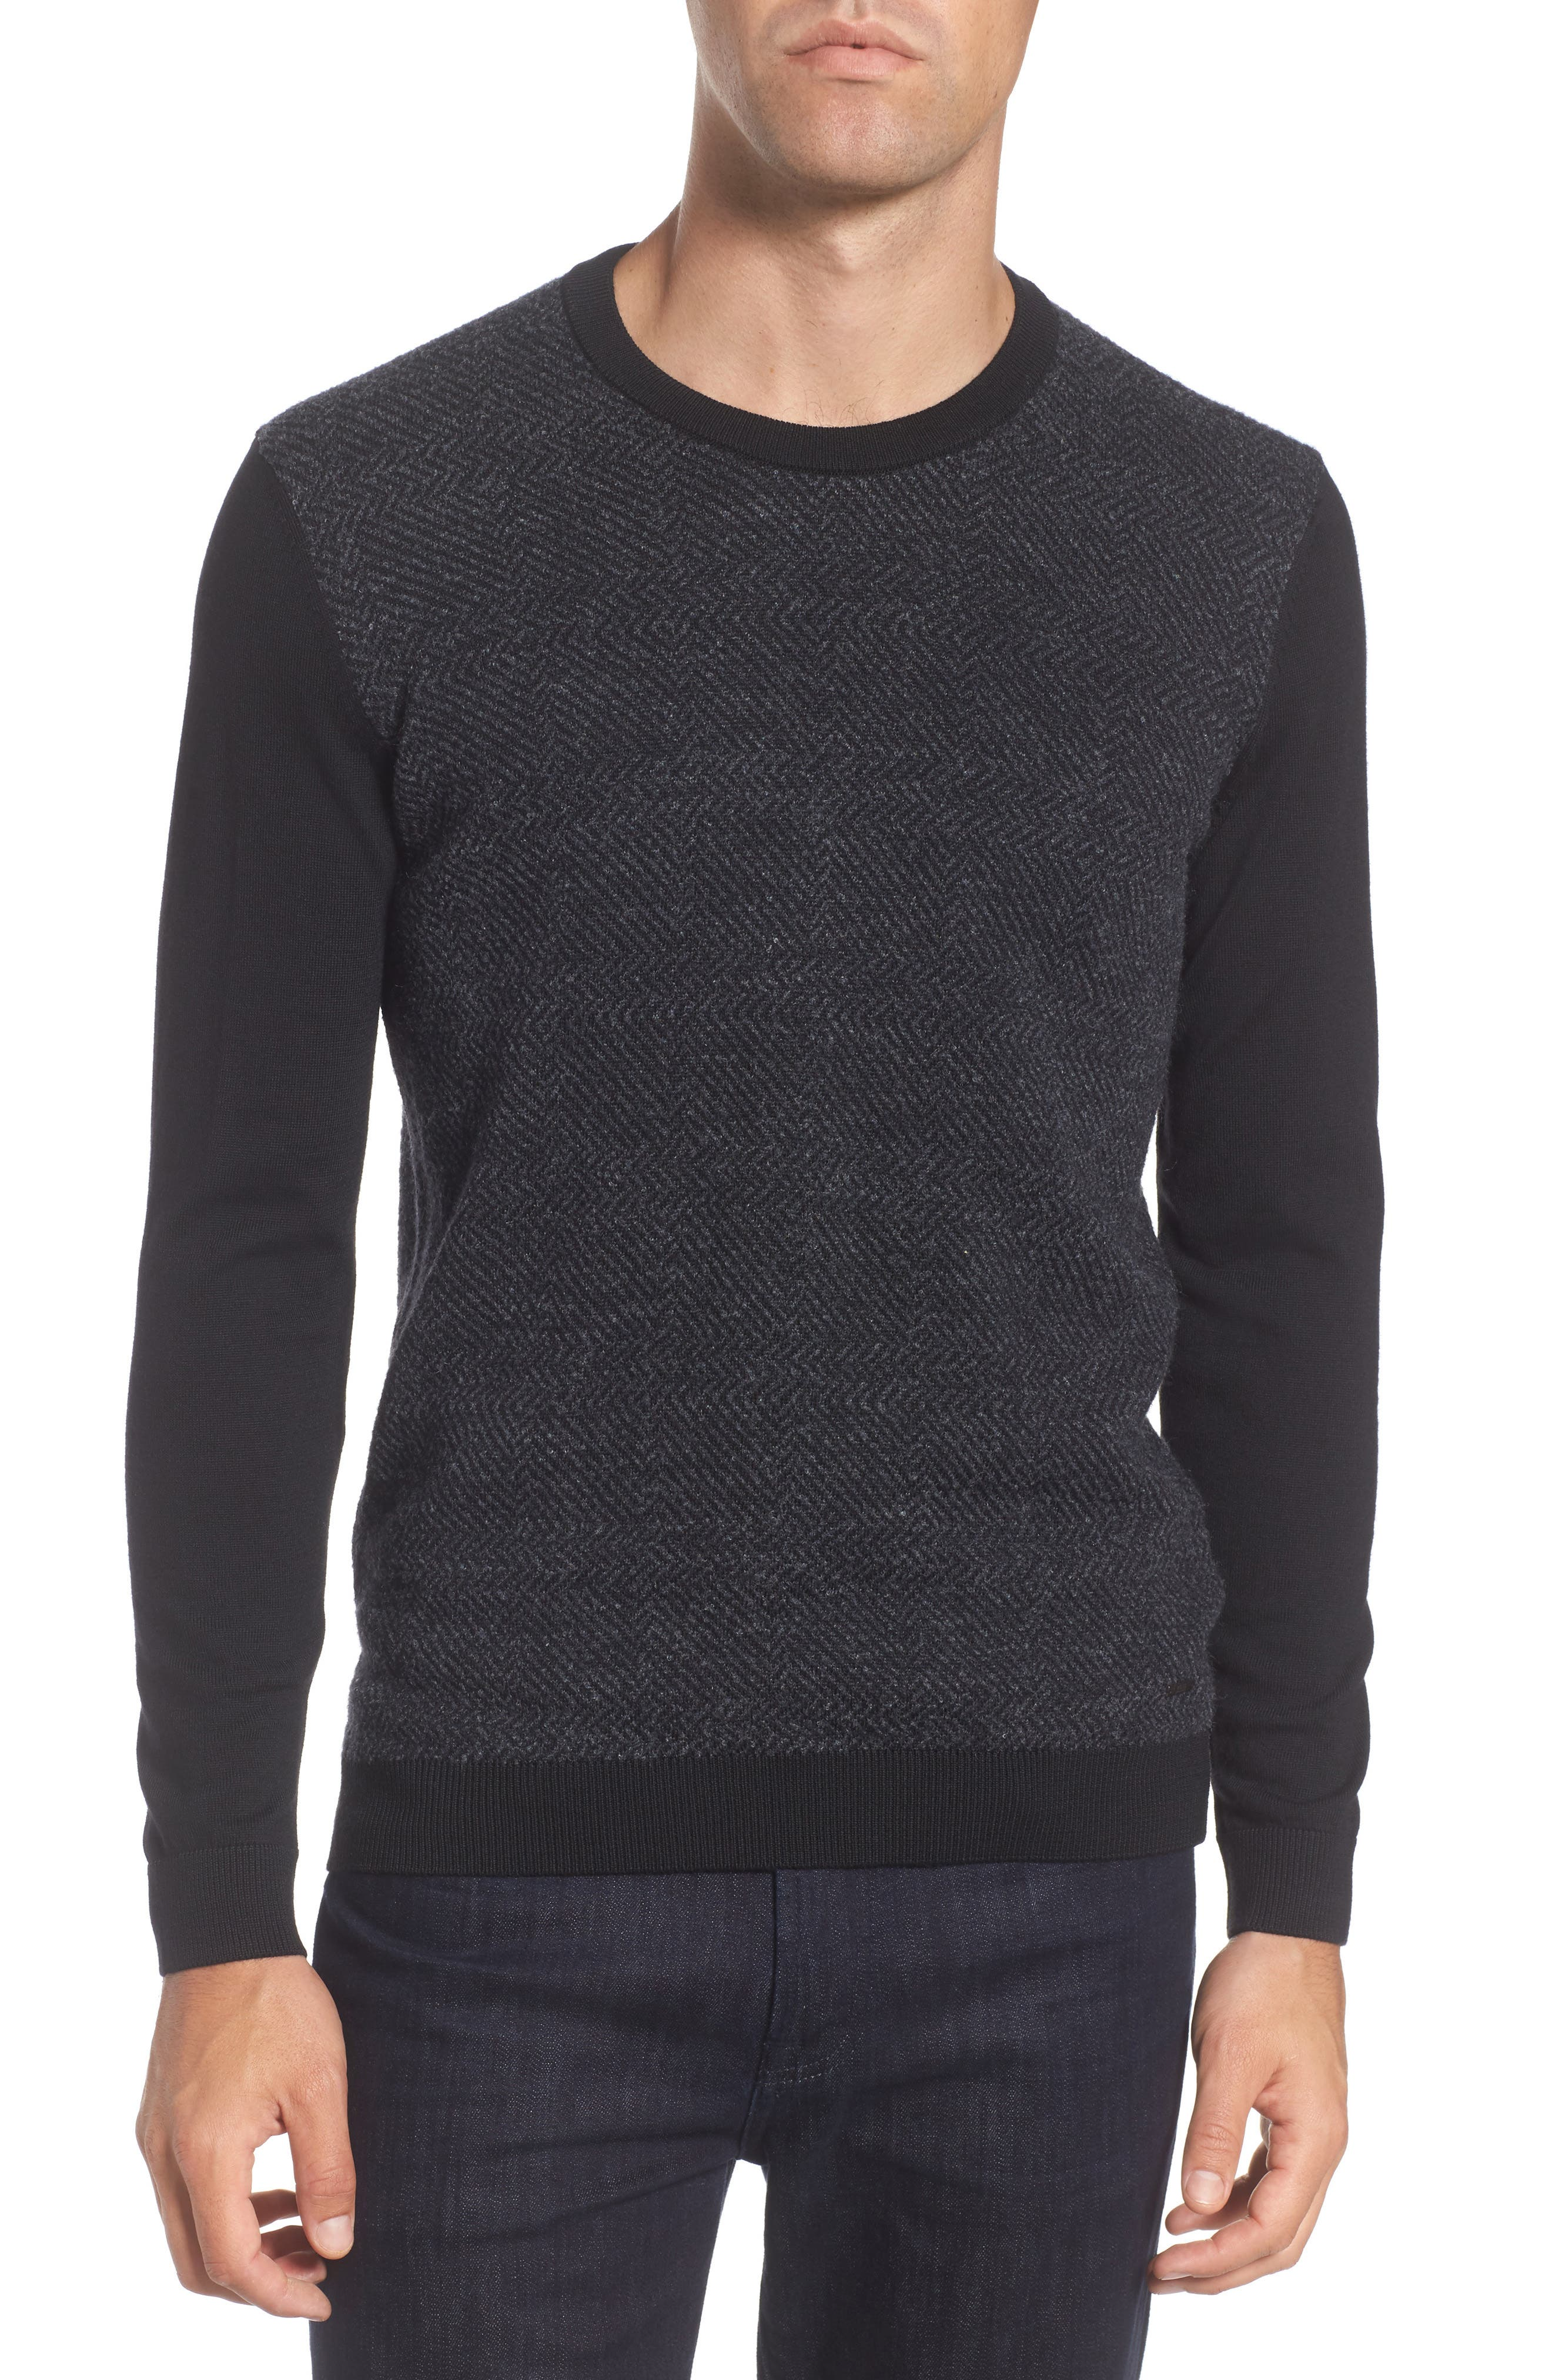 Notto Wool Blend Sweater,                         Main,                         color, Black